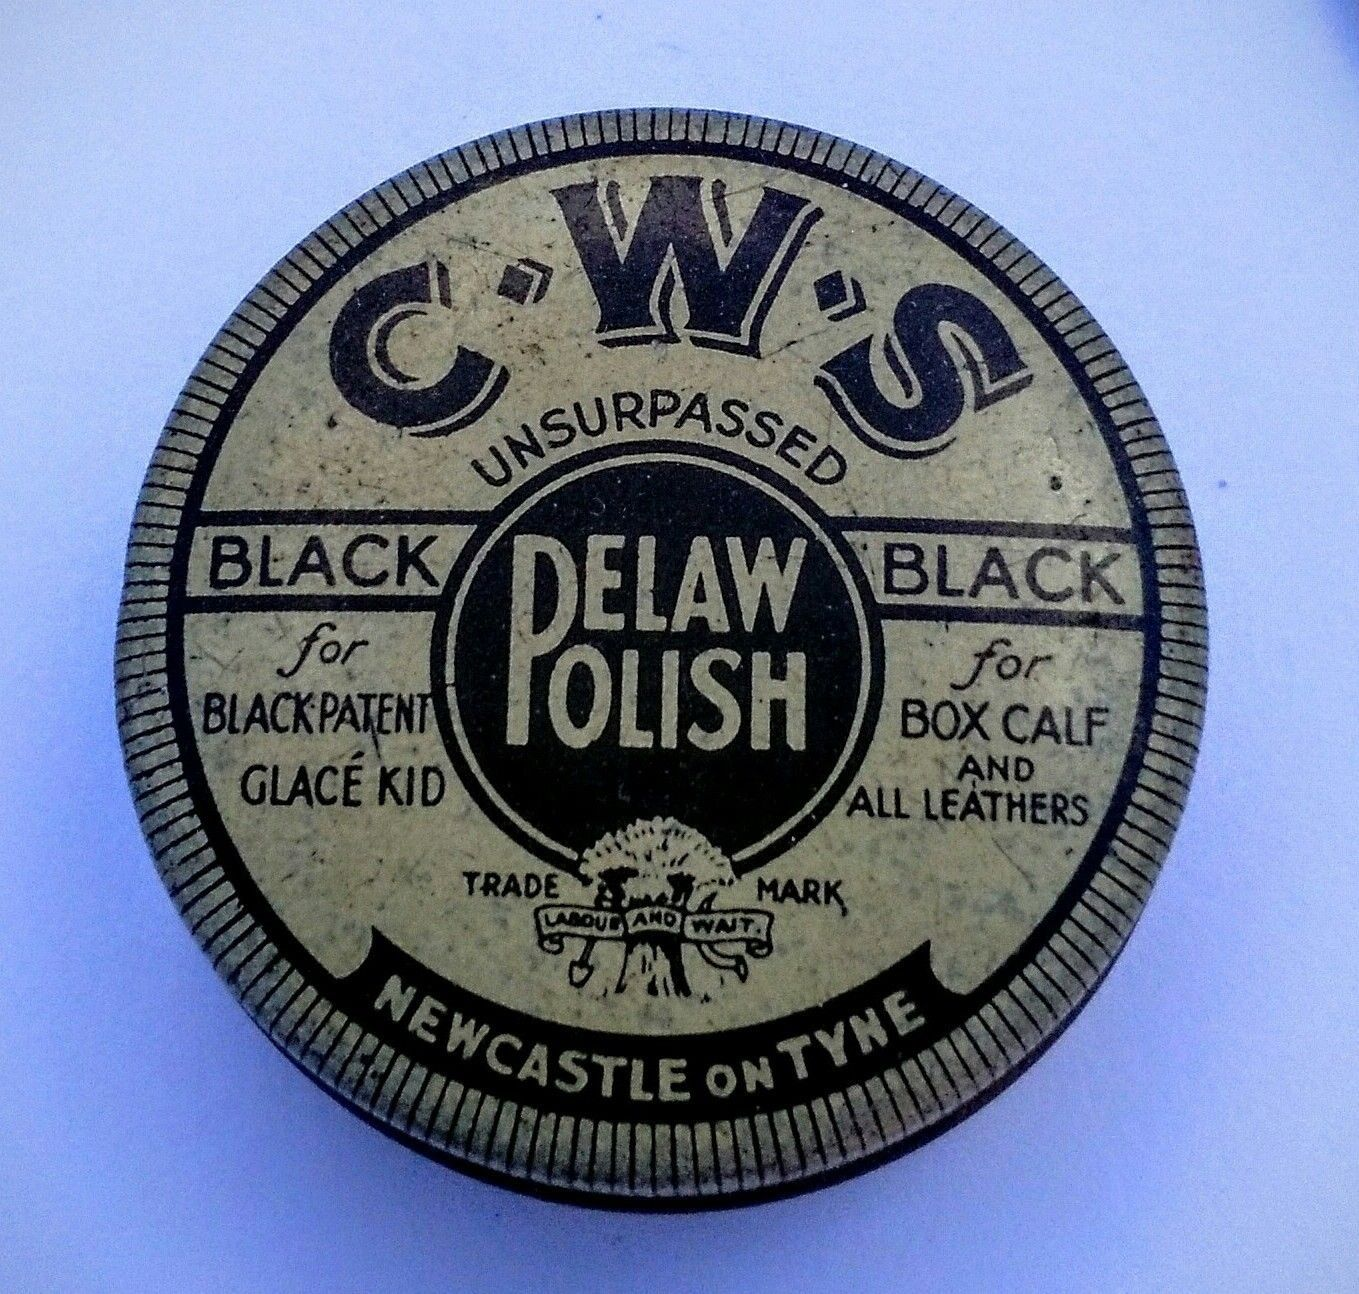 cws pelaw antique. Vintage CWS Pelaw Polish Pencil Sharpner Miniature Advertising Tin | EBay Cws Pelaw Antique